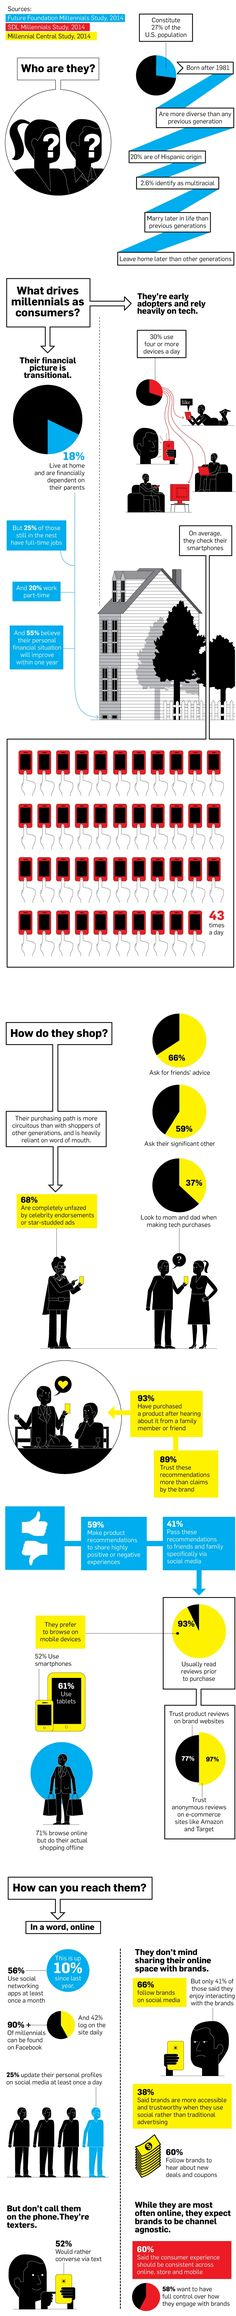 Infographic: Everything You Need to Know About the Millennial Consumer   Adweek